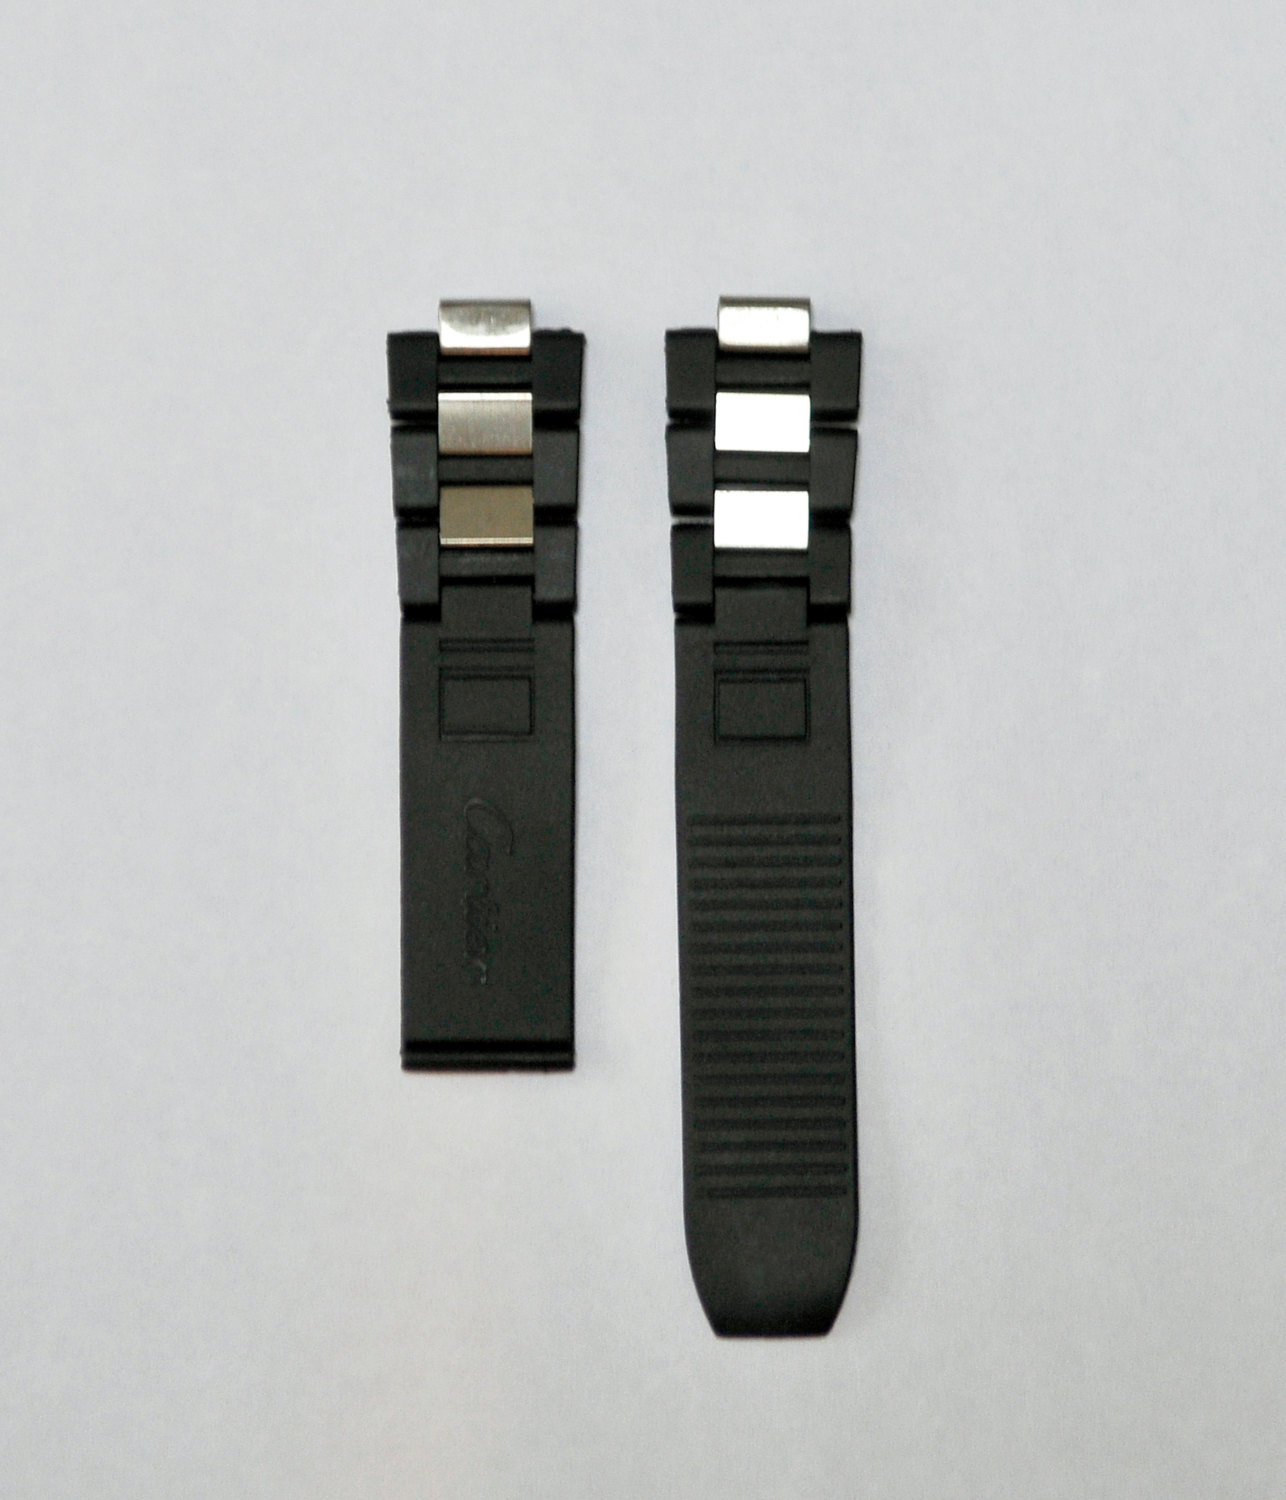 Rubber/Stainless Steel Watch Band Strap fits Cartier Must 21 Chronoscaph & Autos